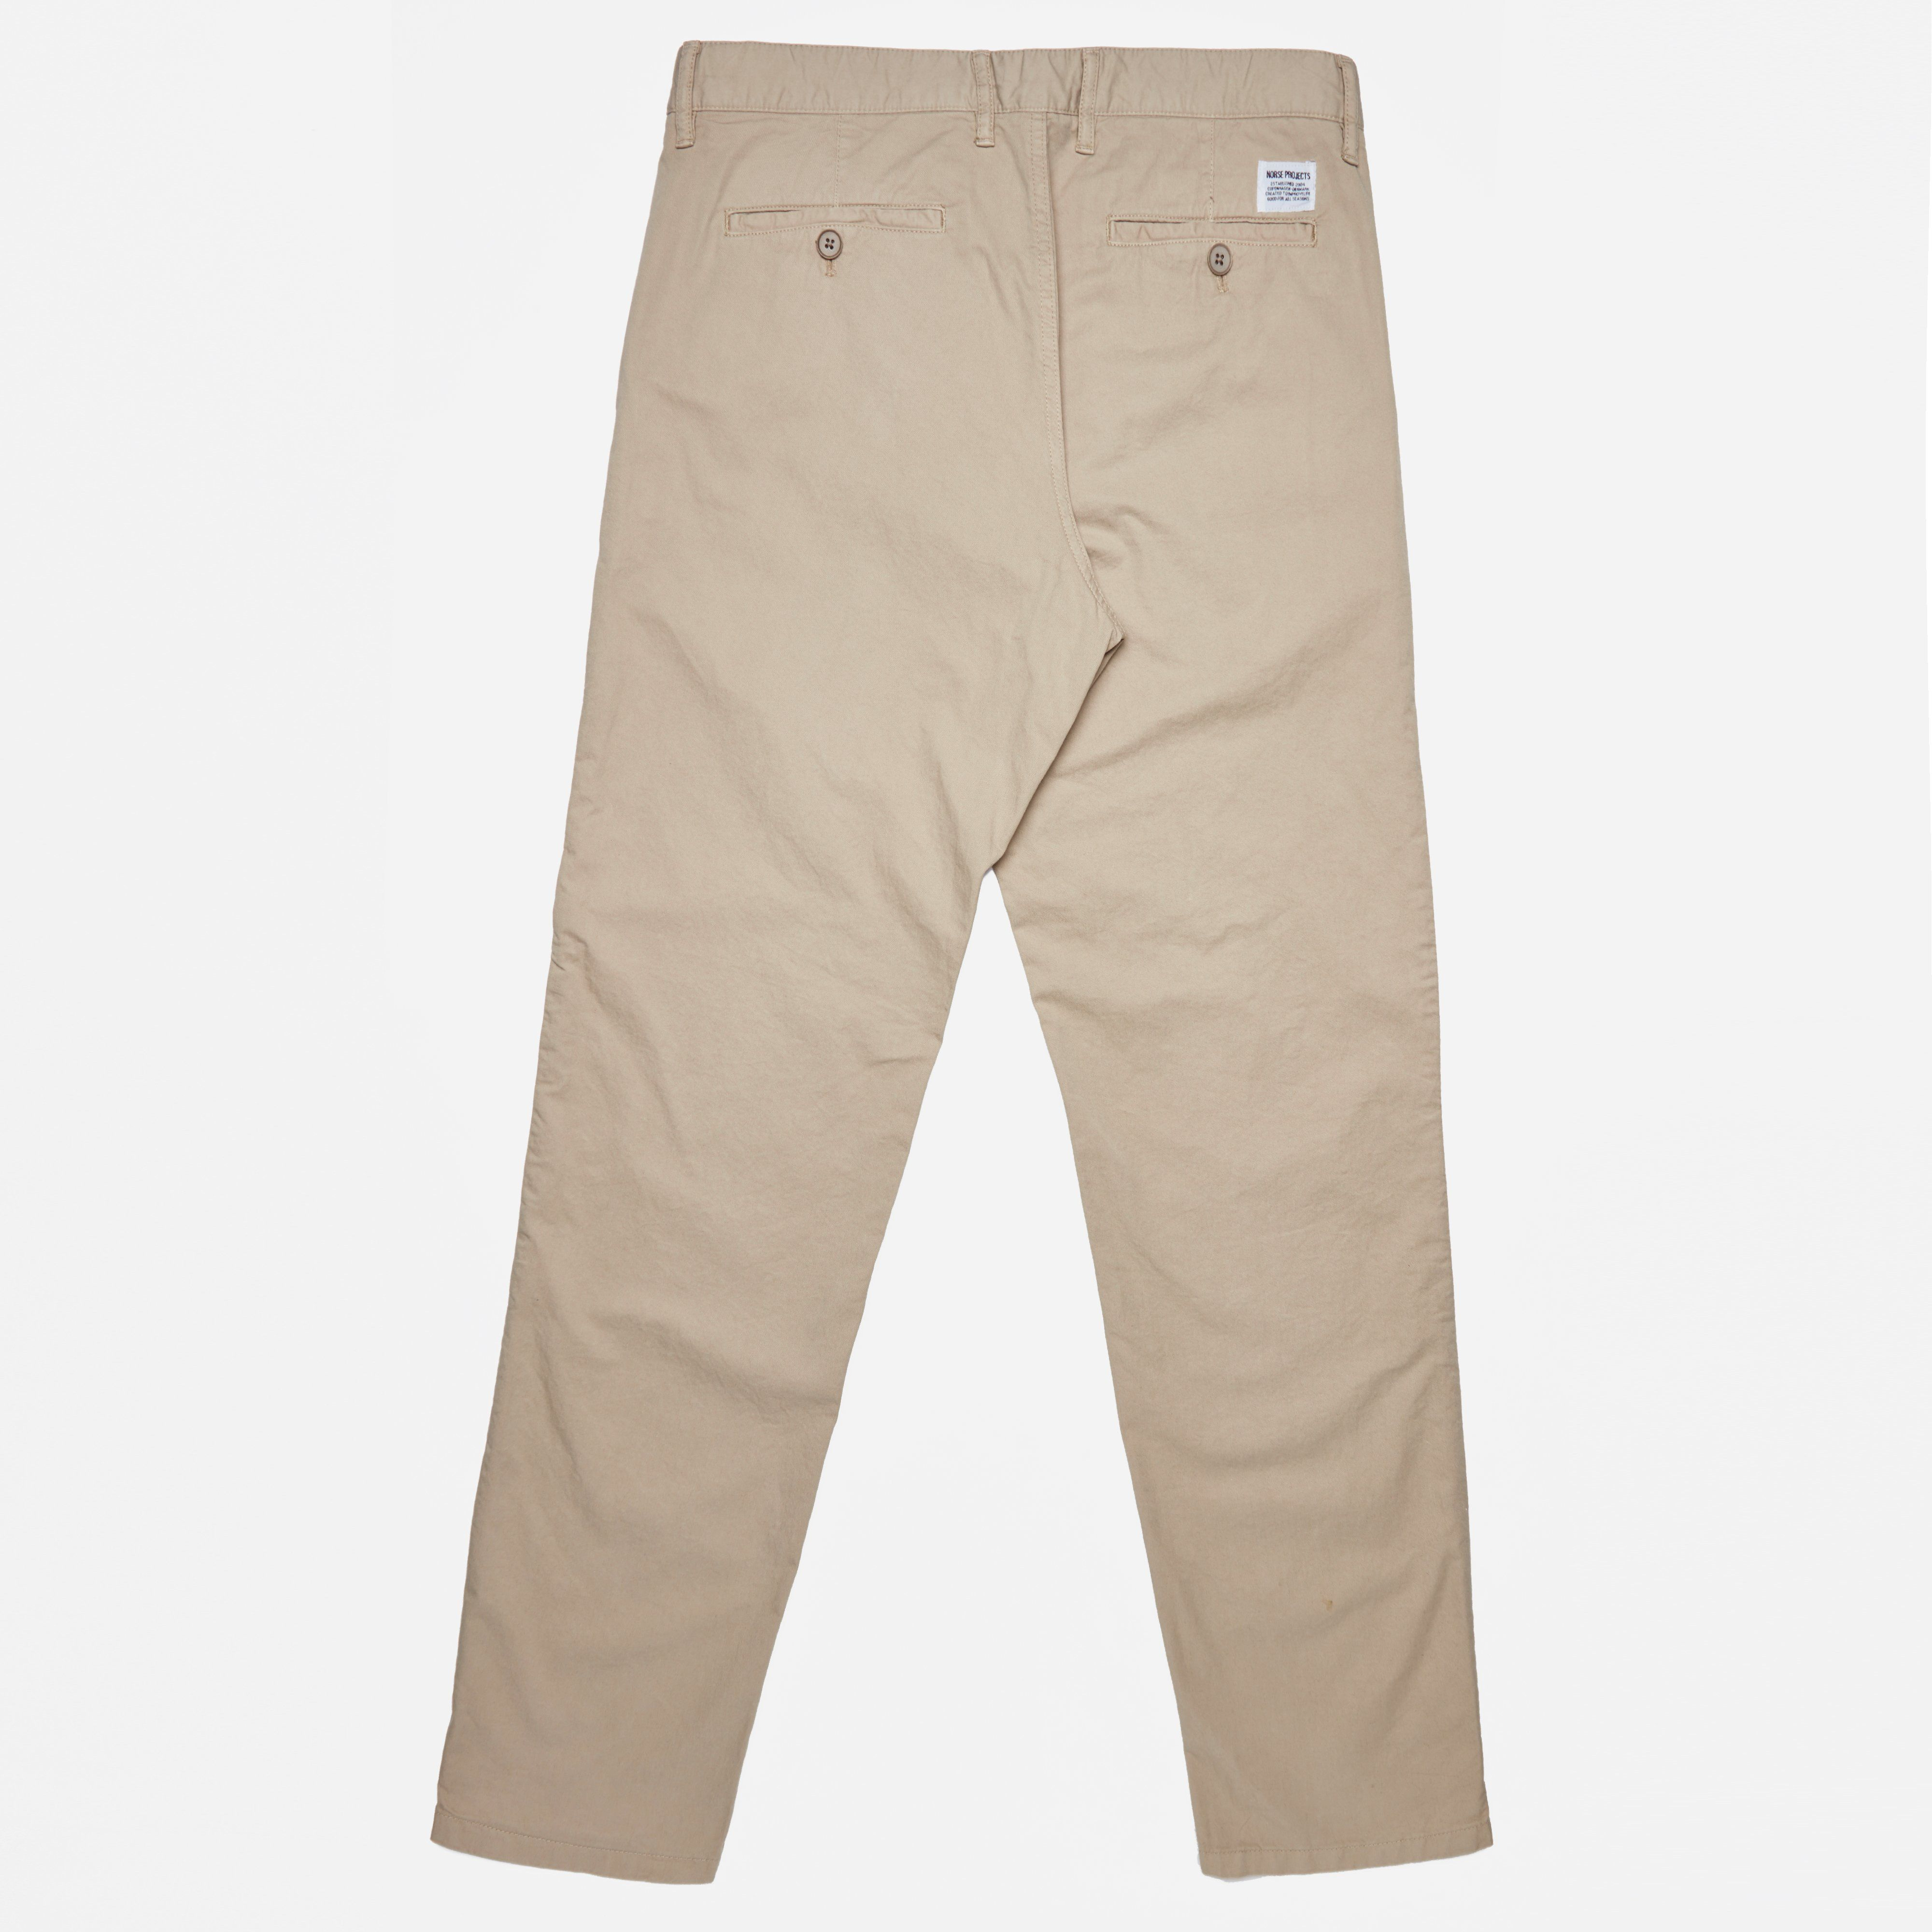 Norse Projects Aros Light Twill Chino